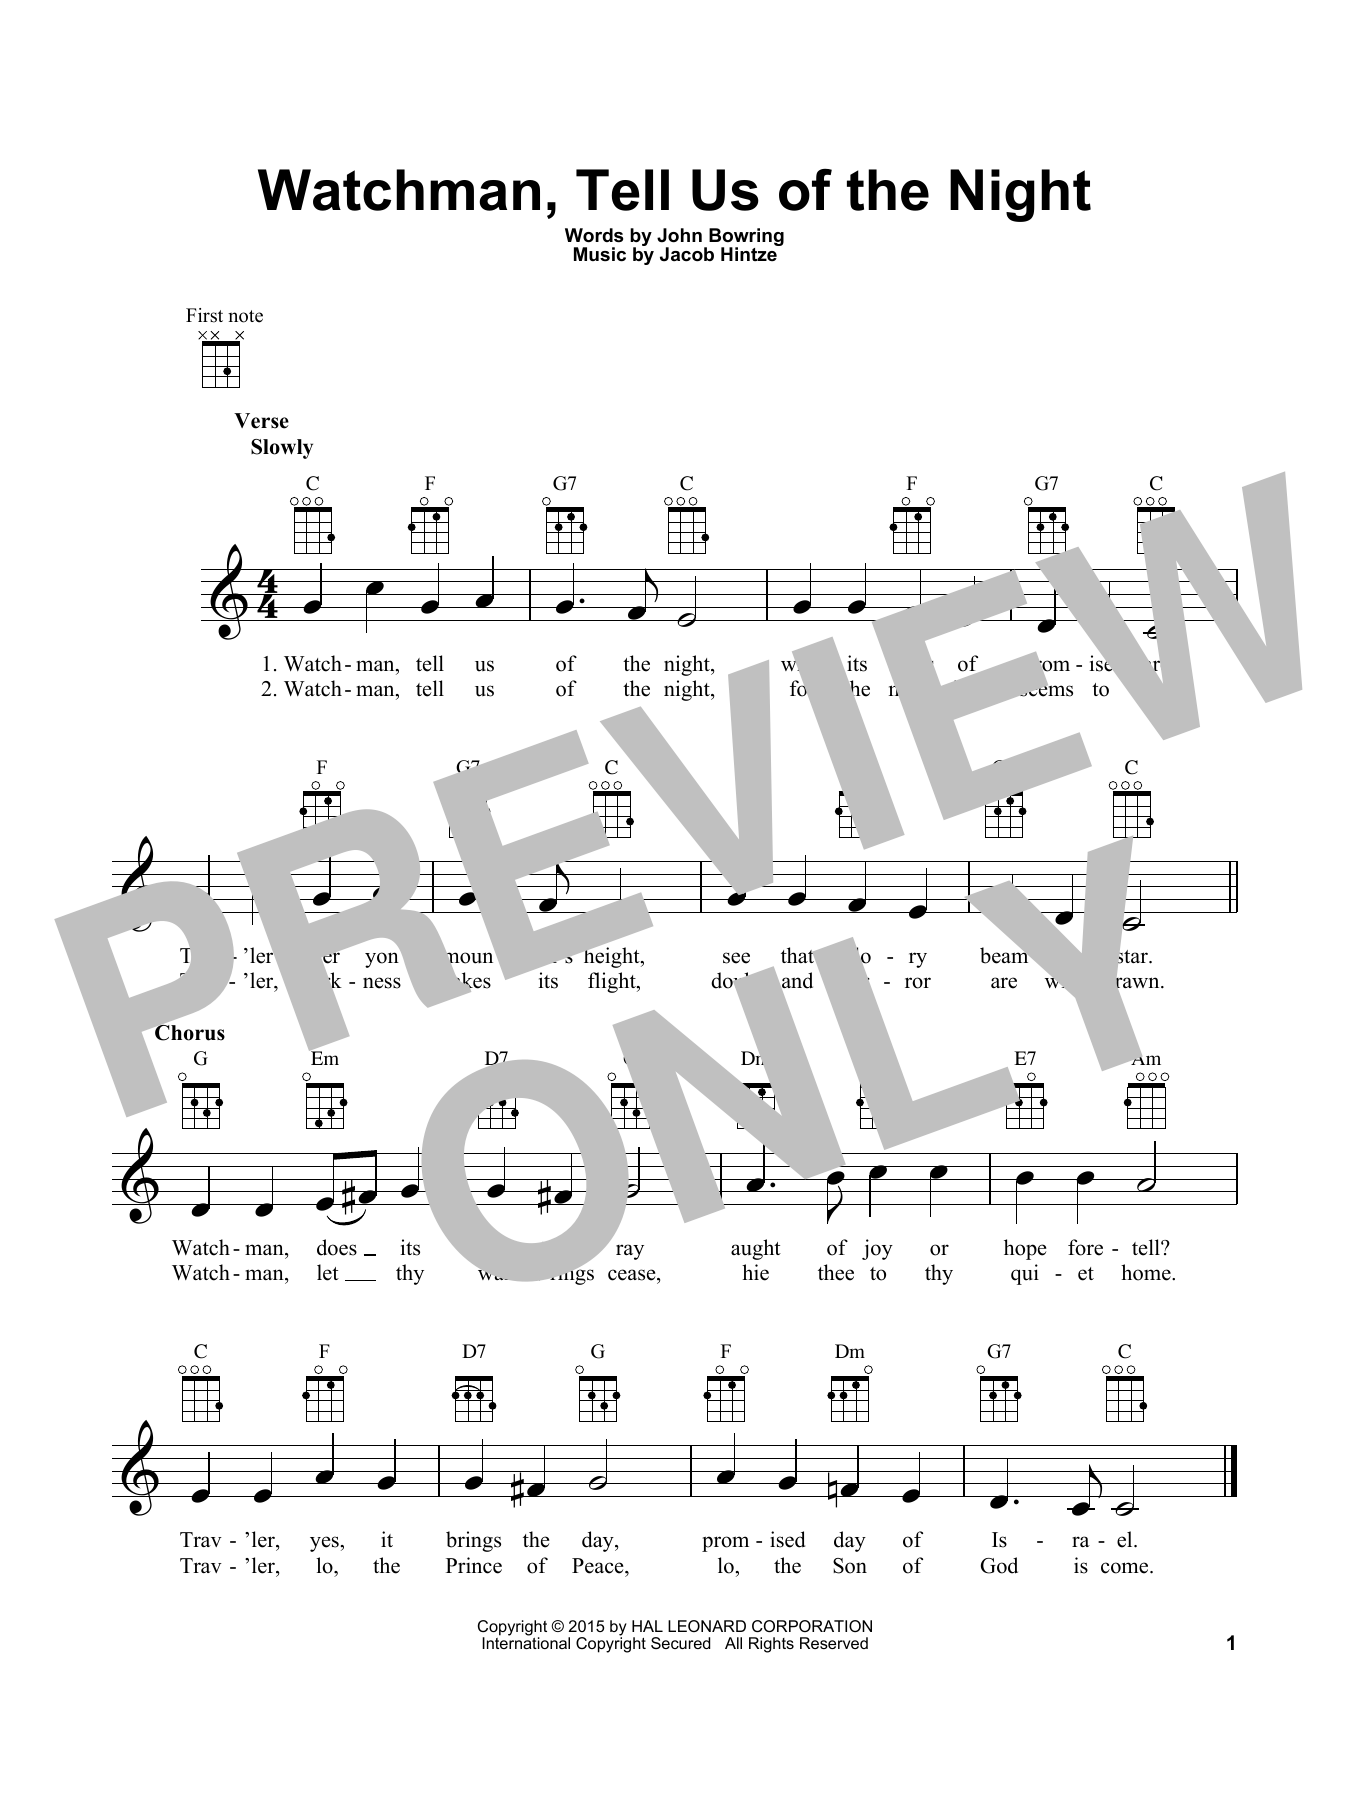 John Bowring Watchman, Tell Us Of The Night sheet music notes and chords. Download Printable PDF.